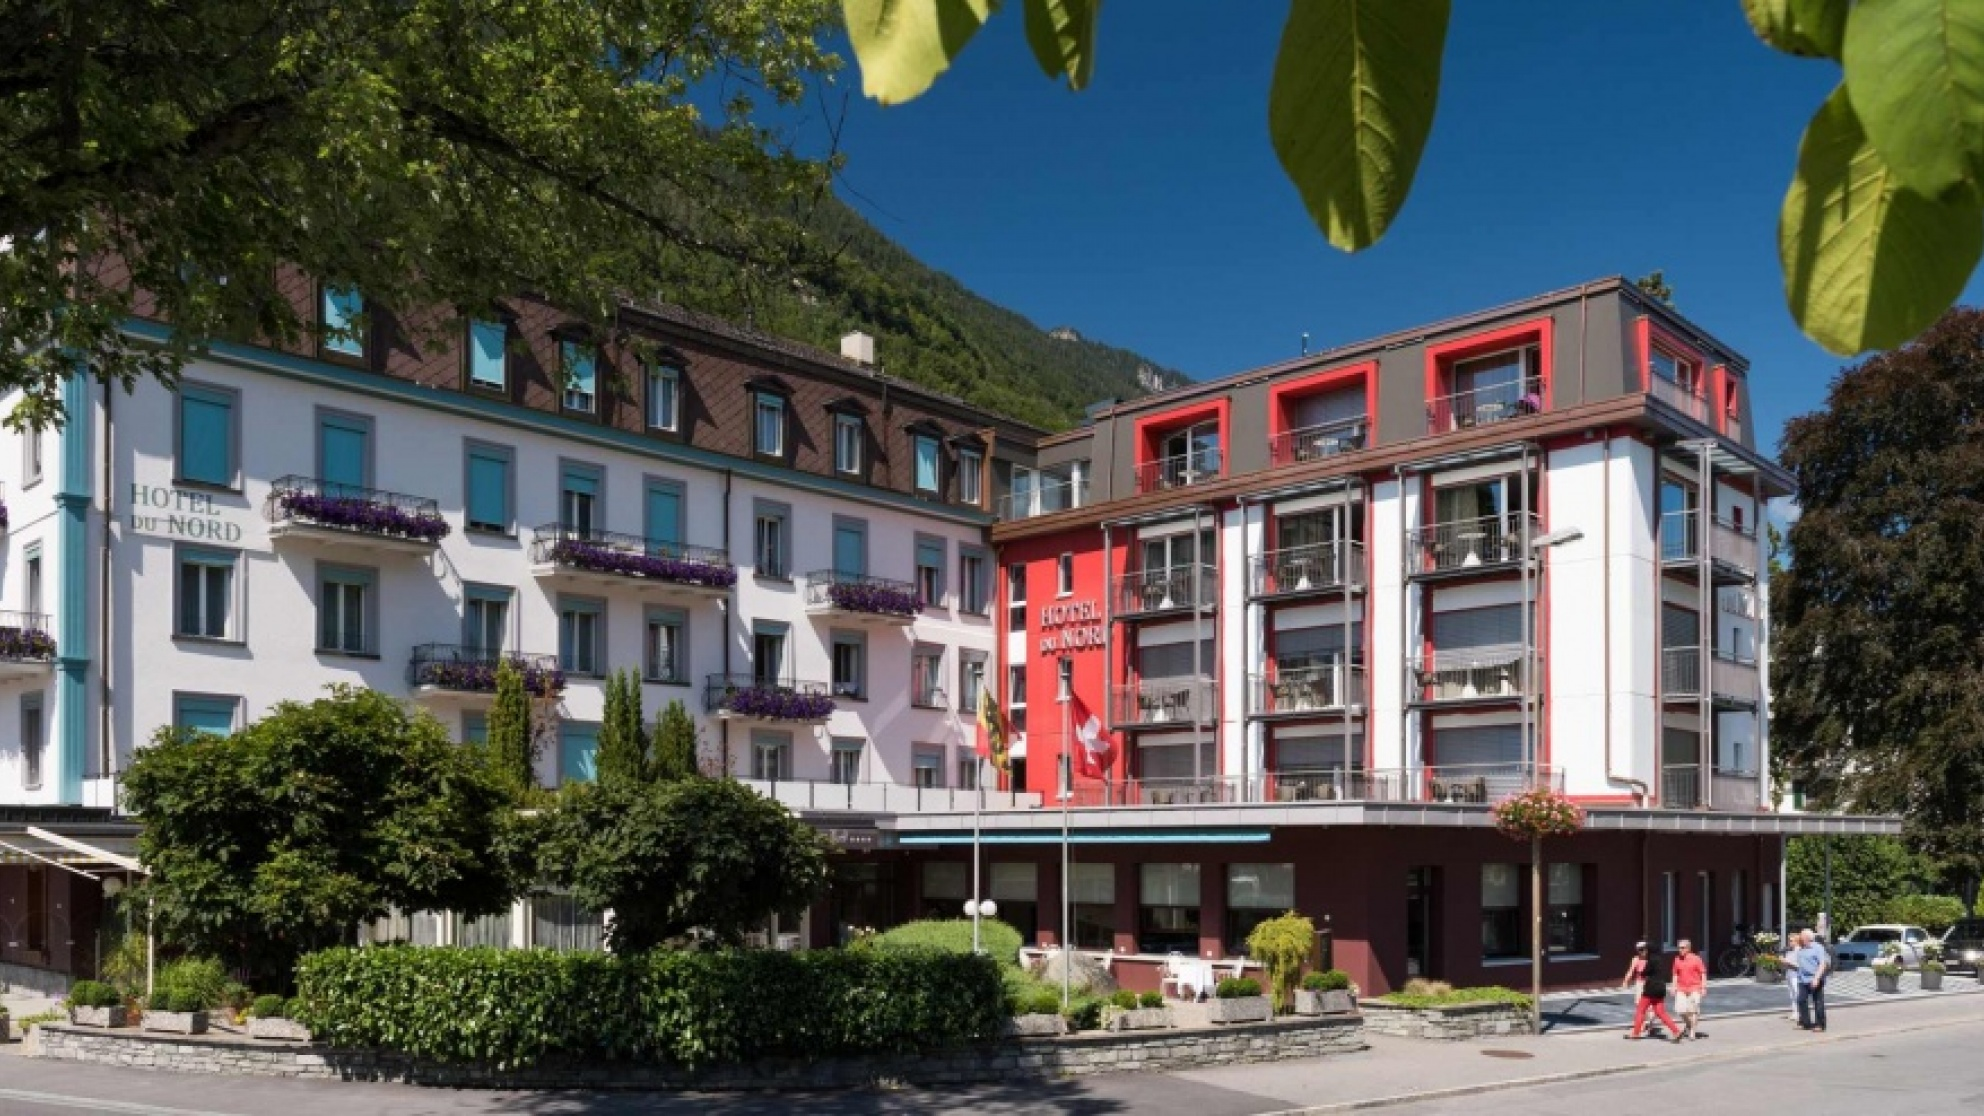 Hotel du Nord, Interlaken